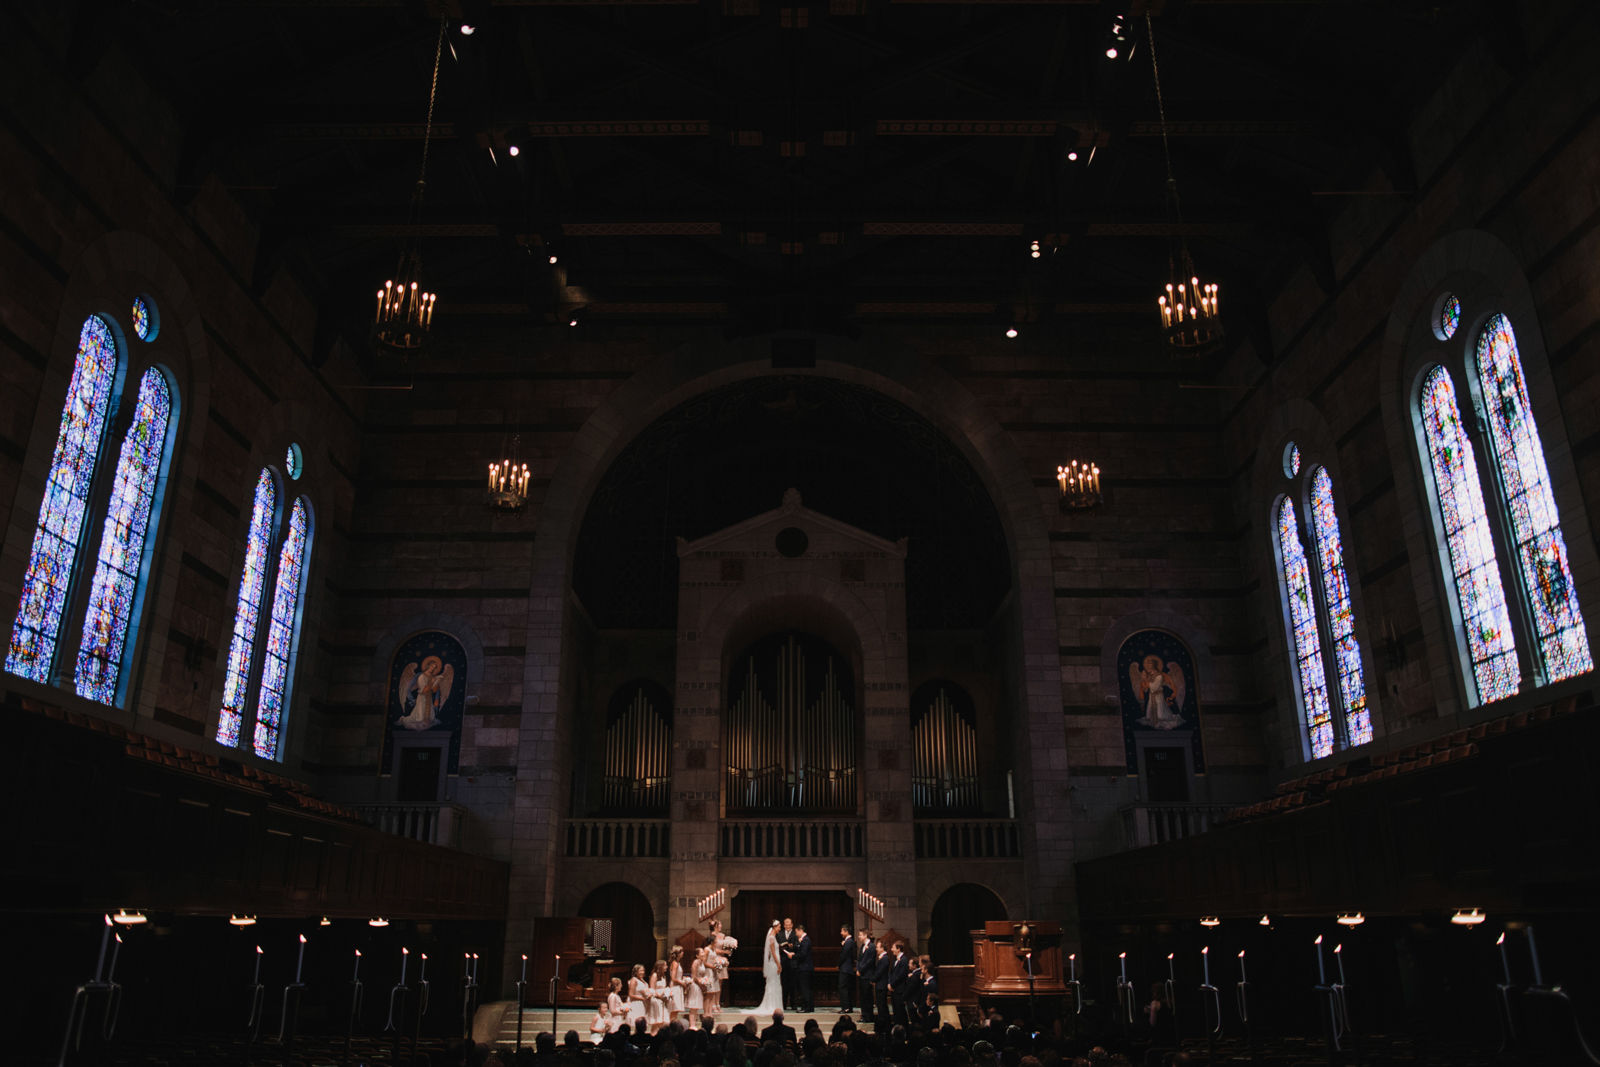 Fountain-Street-Church-and-Urban-Institute-of-Contemporary-Arts-Wedding-Kirstin-and-Khoi-007.jpg